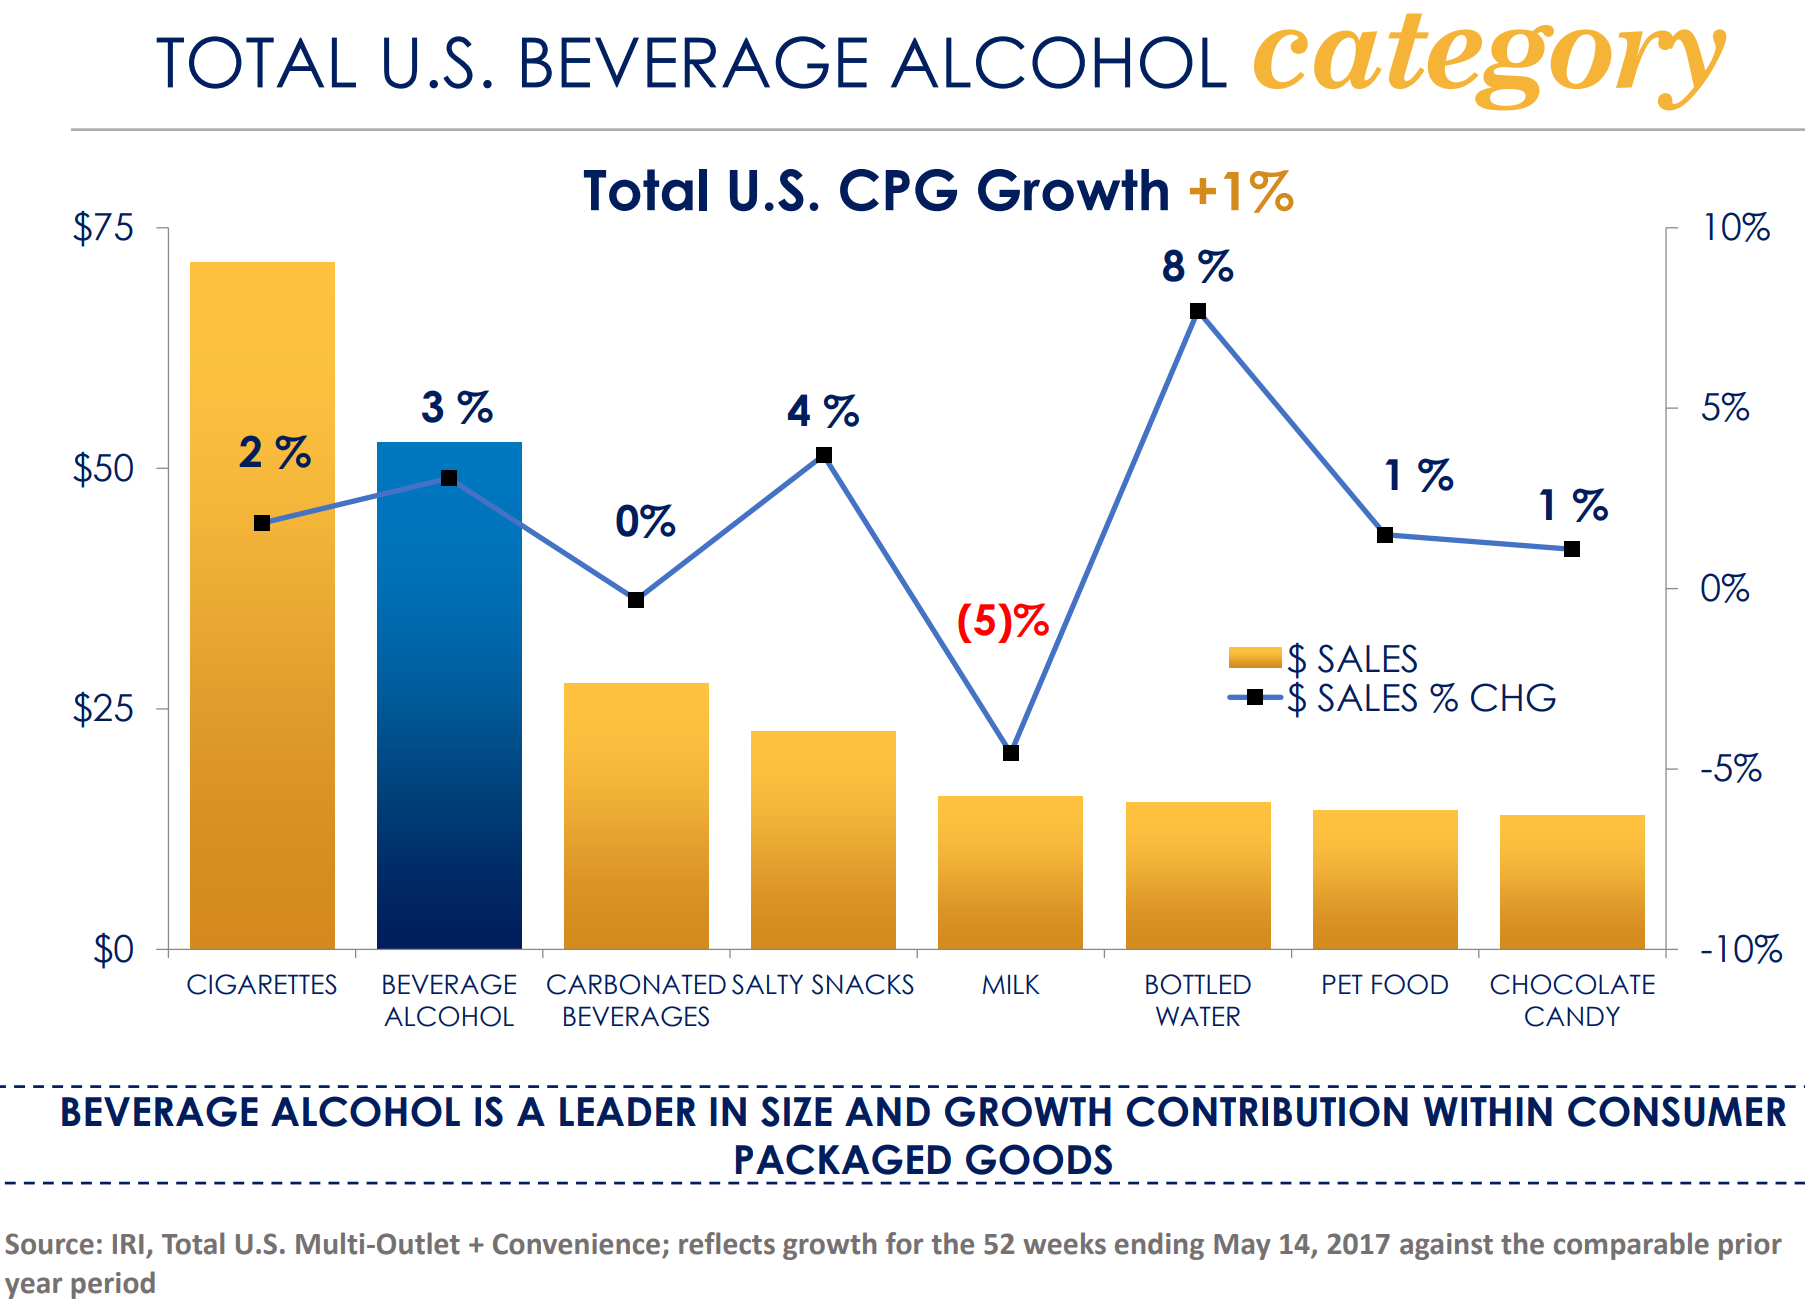 Constellation Brands, Inc. (STZ) to Issue $0.52 Quarterly Dividend